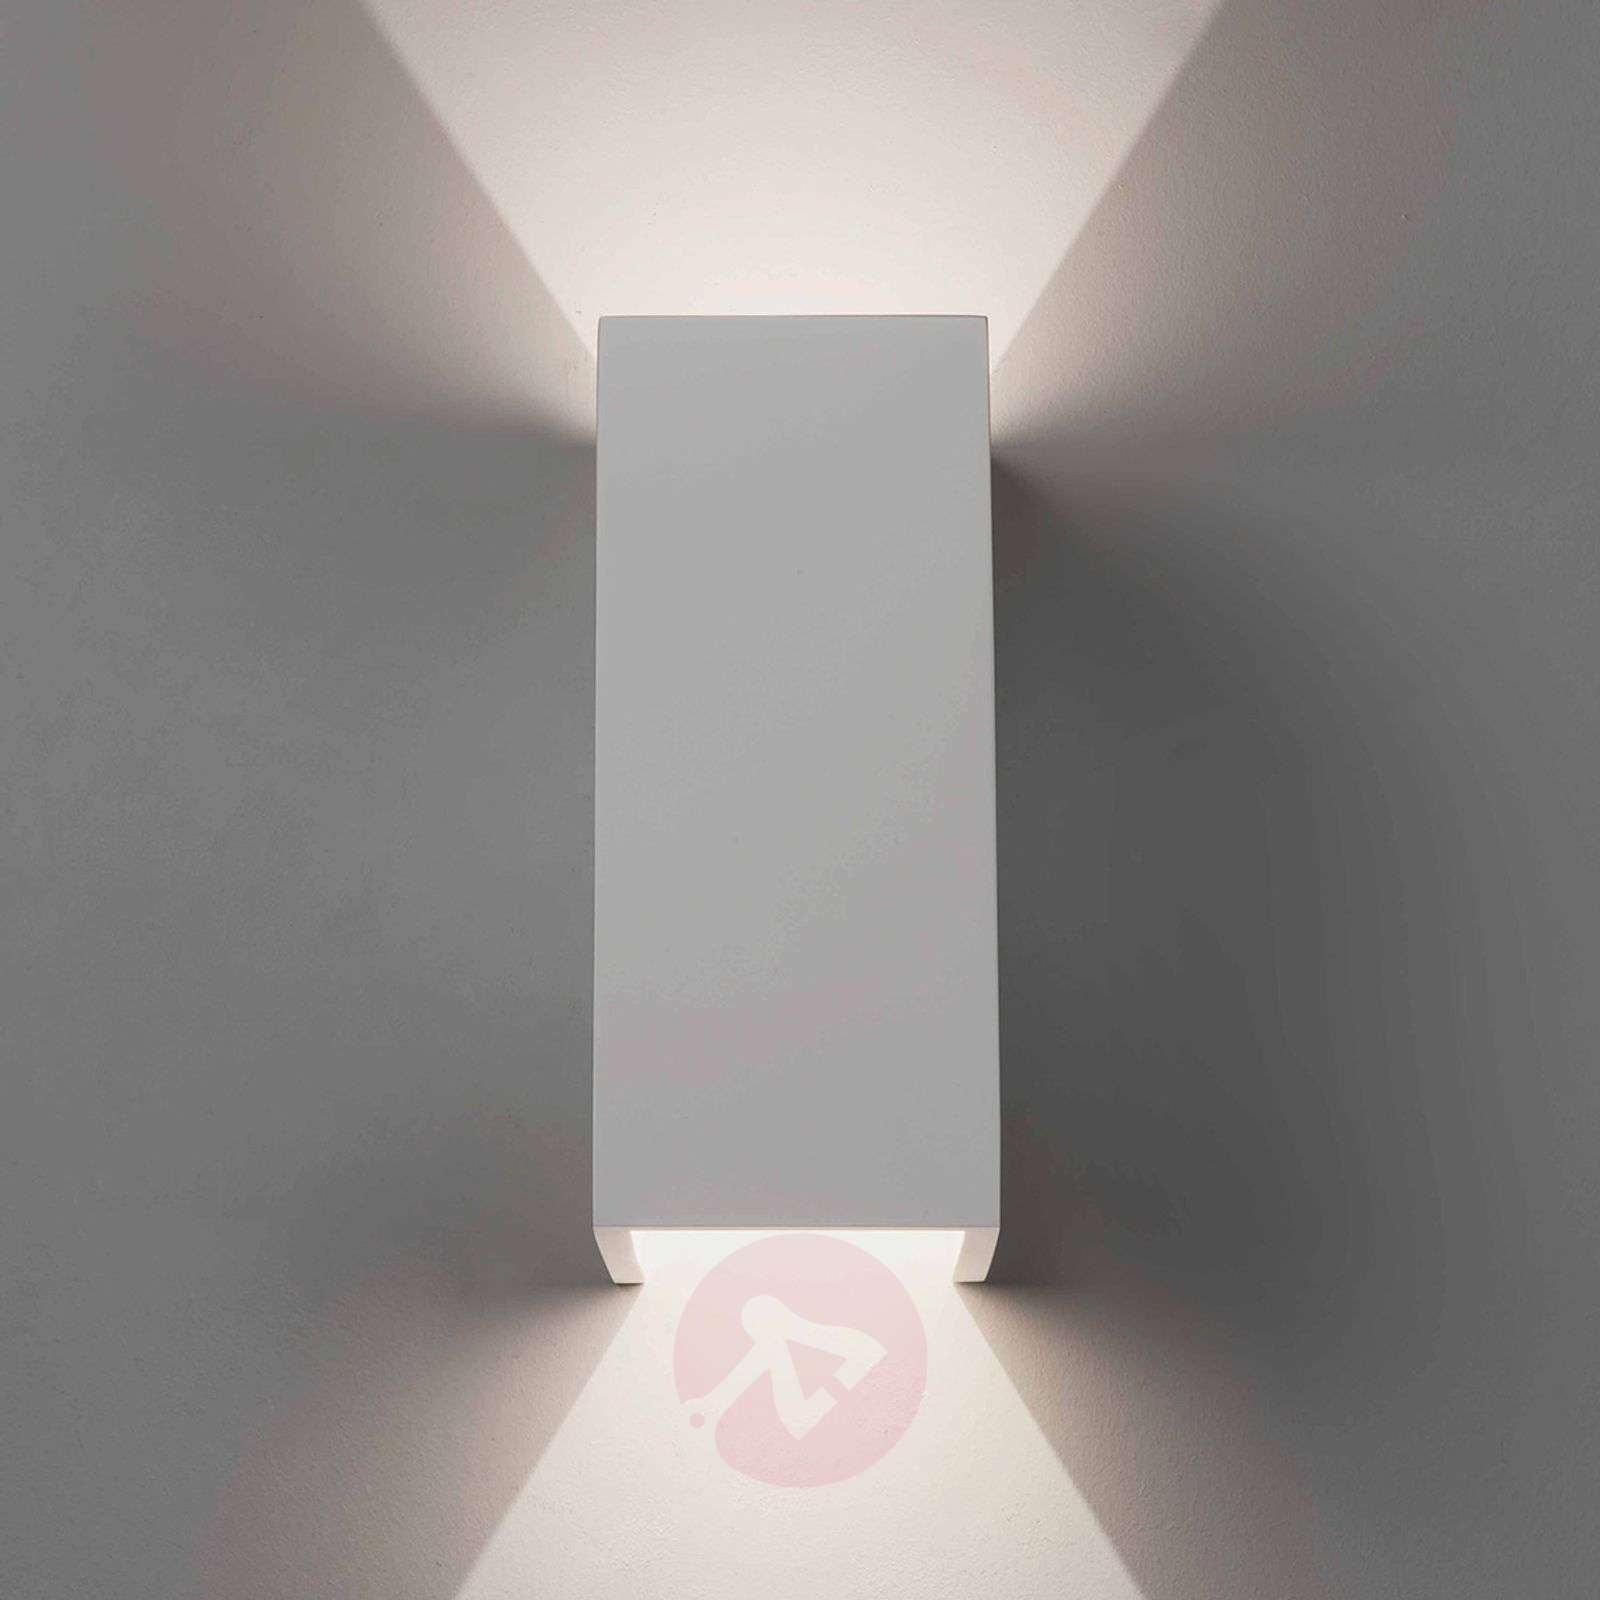 Astro Parma 210 wandlamp in wit-1020346-02